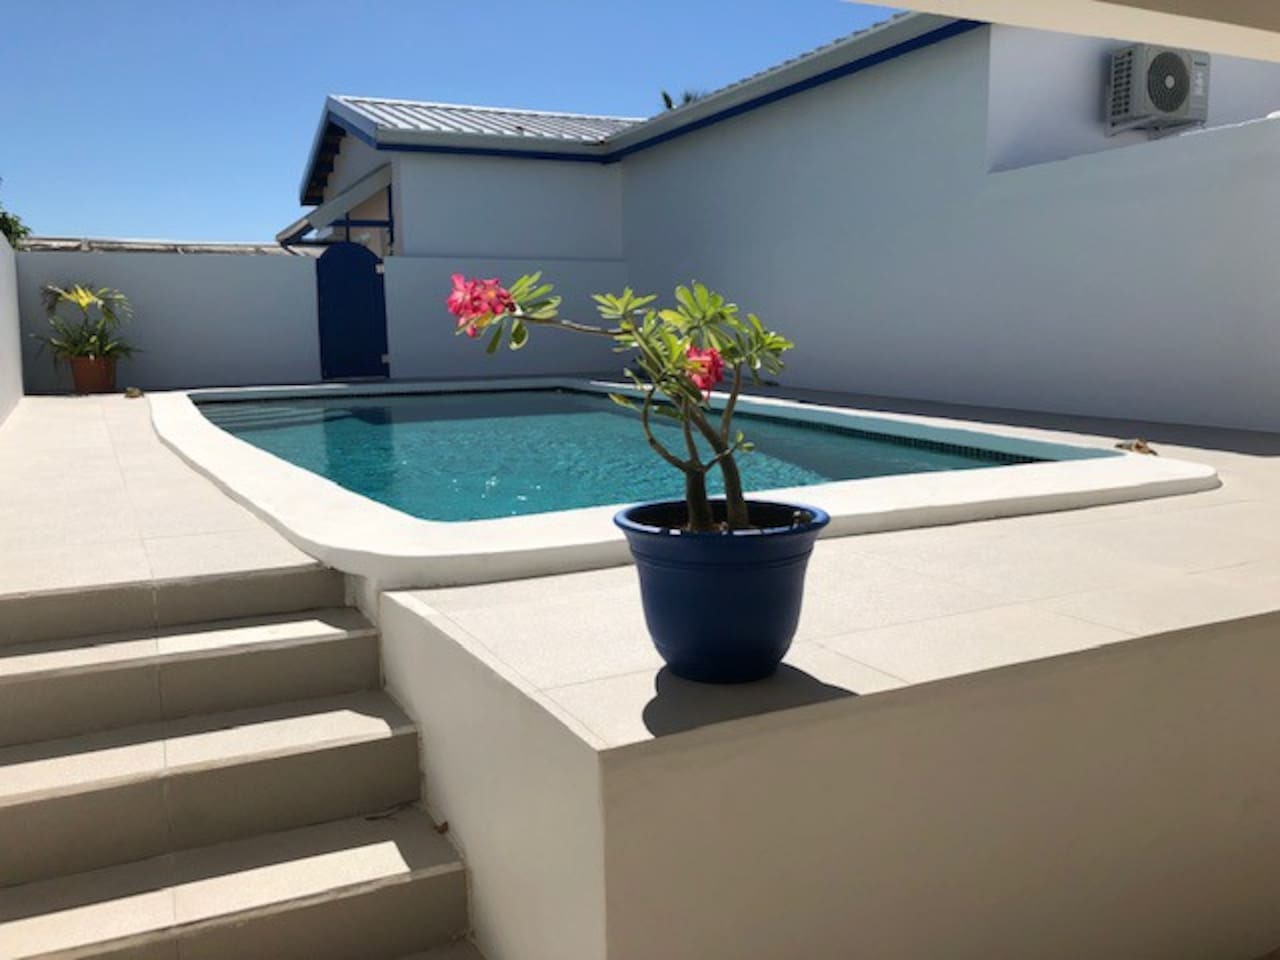 Private pool to enjoy with loungers and floats